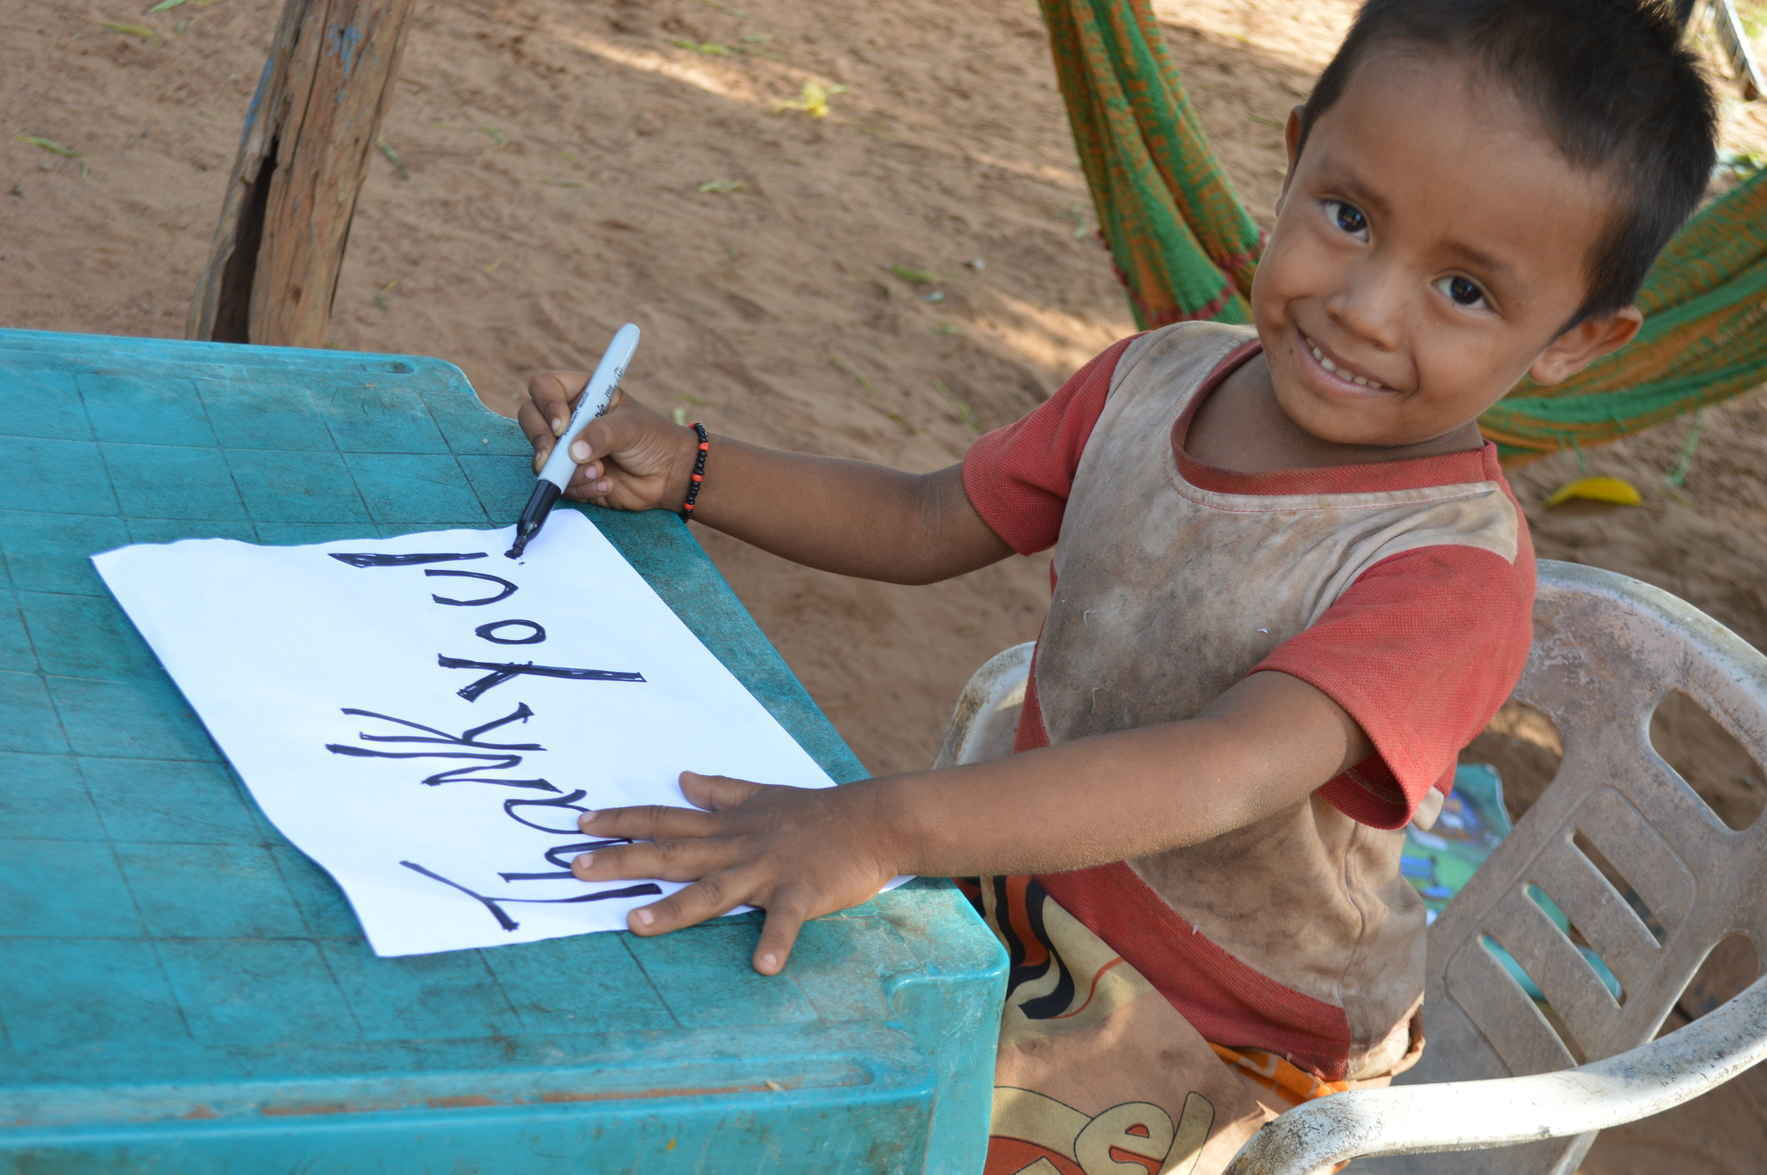 For $50 a month you can support a Wayuu child in Venezuela image